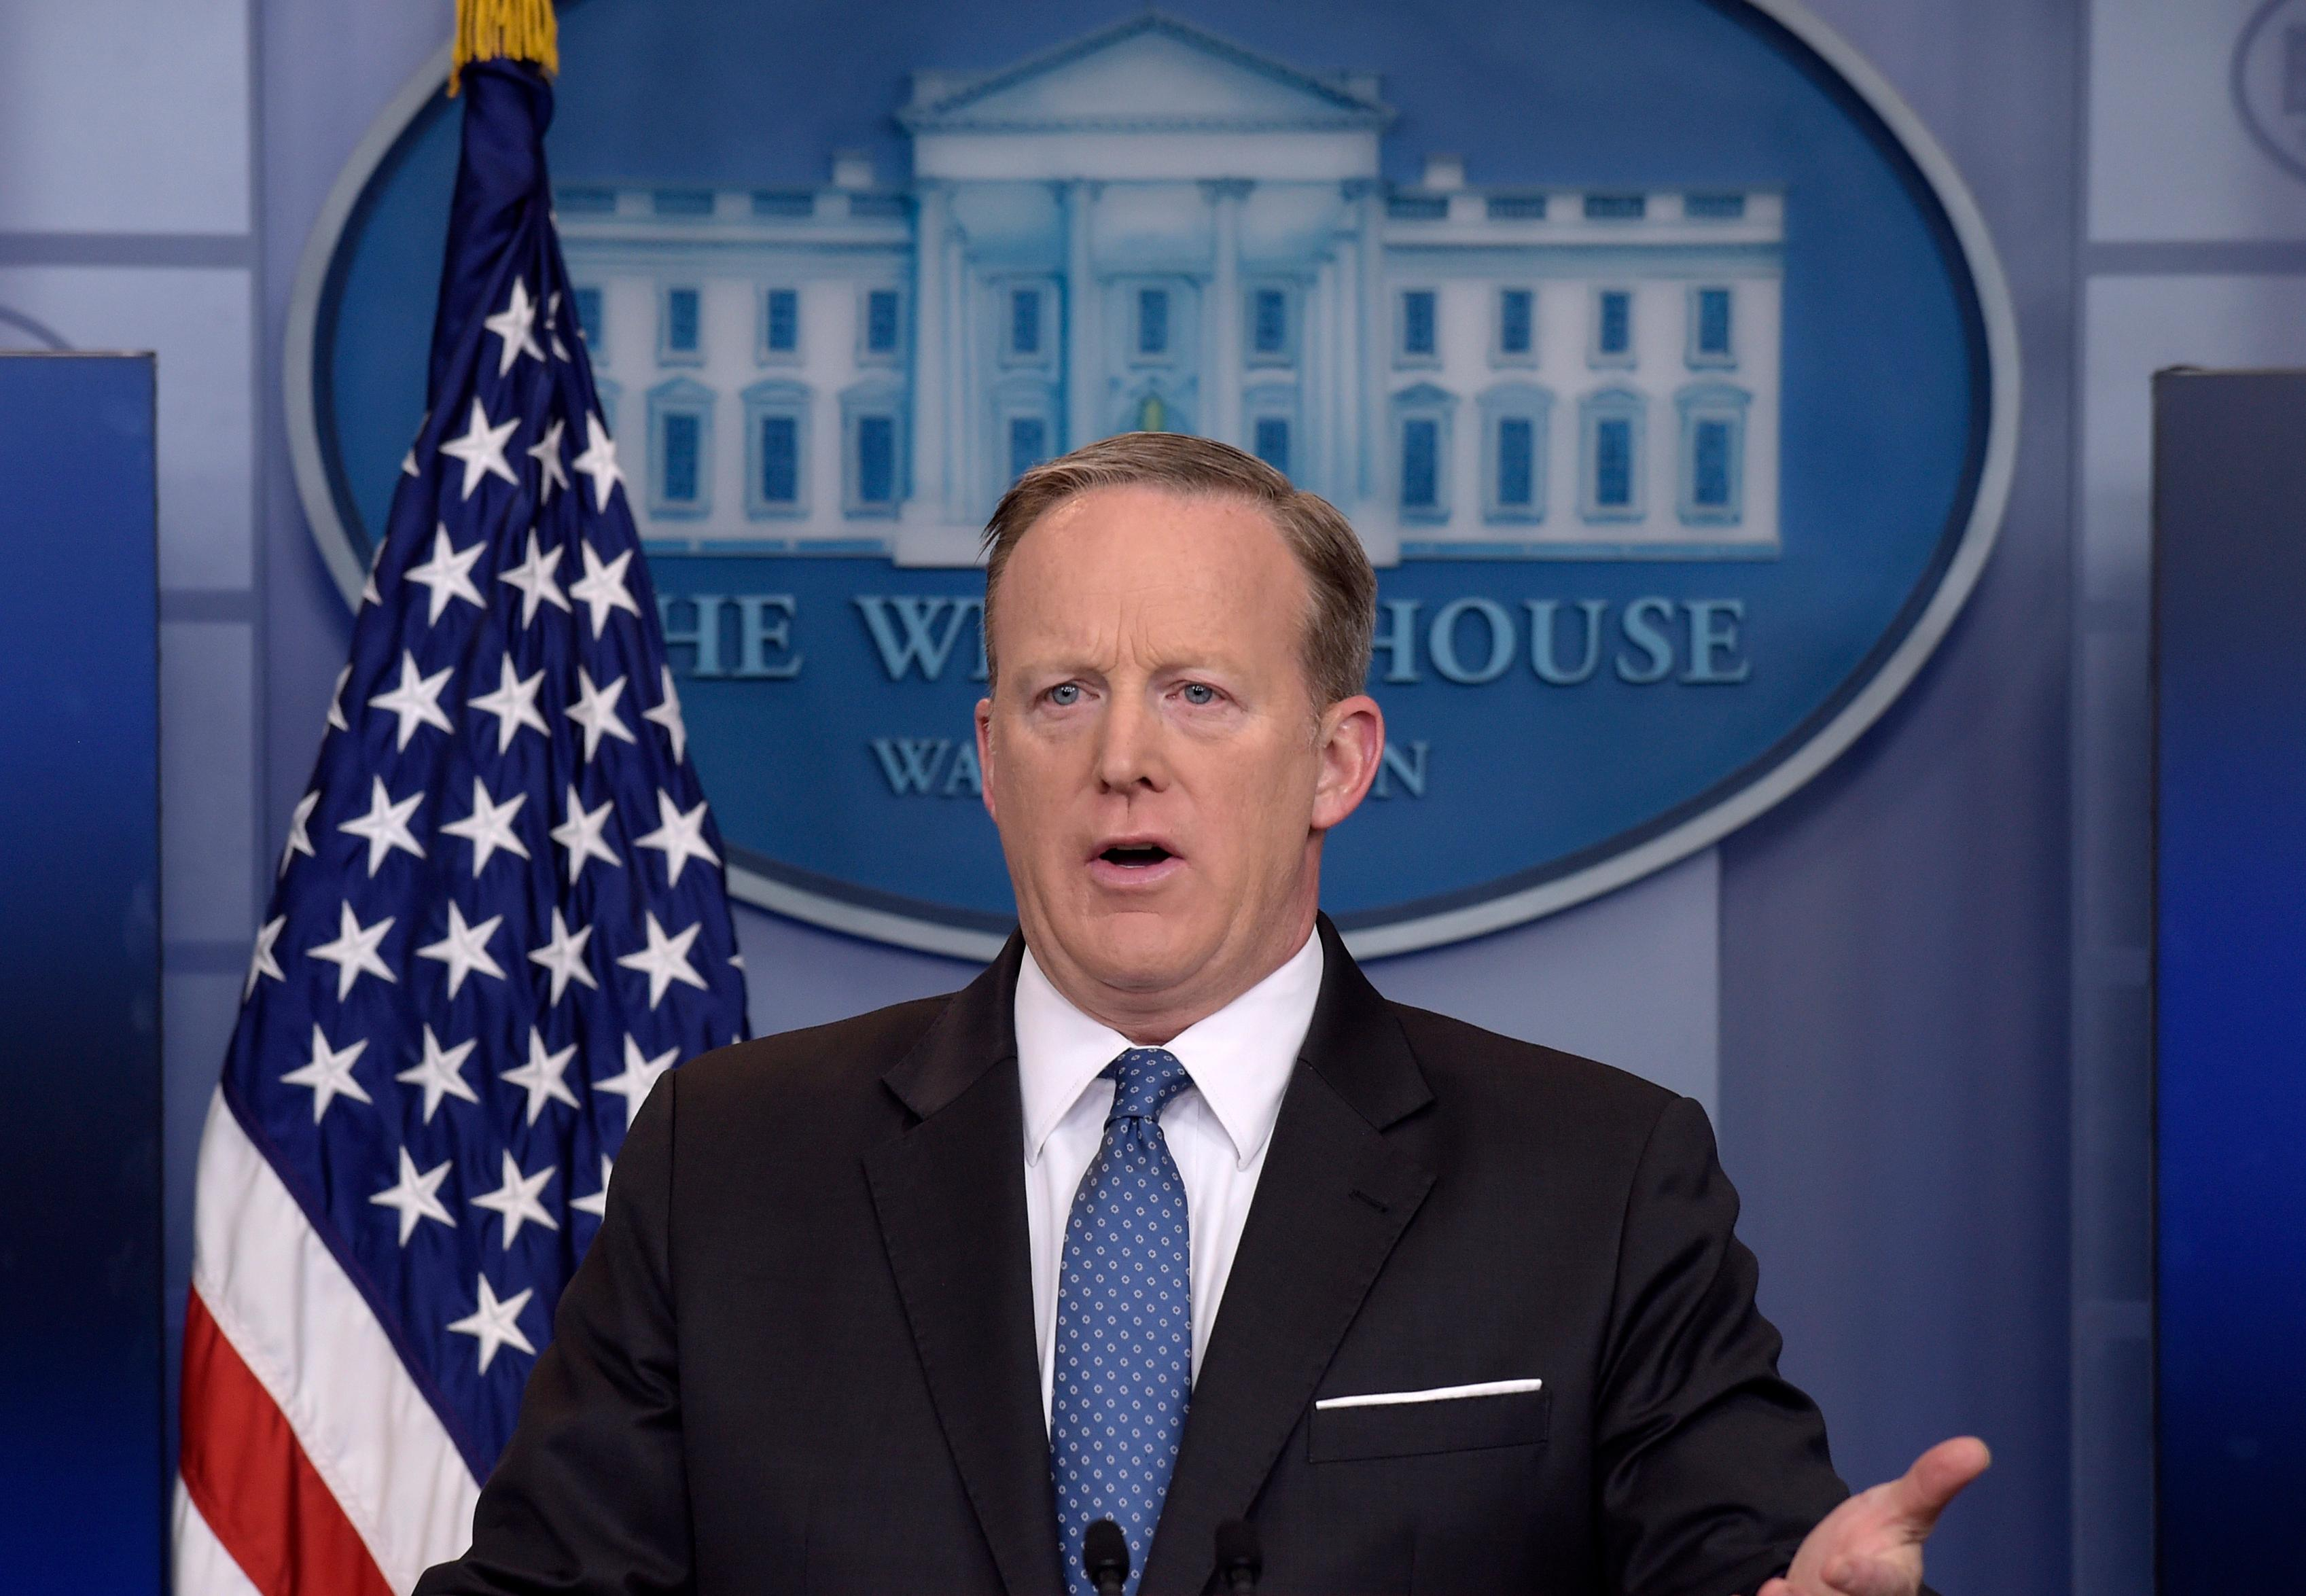 White House press secretary Sean Spicer speaks during the daily briefing at the White House in Washington, Monday, April 3, 2017. Spicer answered questions about the Supreme Court, President Donald Trump's salary and other topics. (AP Photo/Susan Walsh)